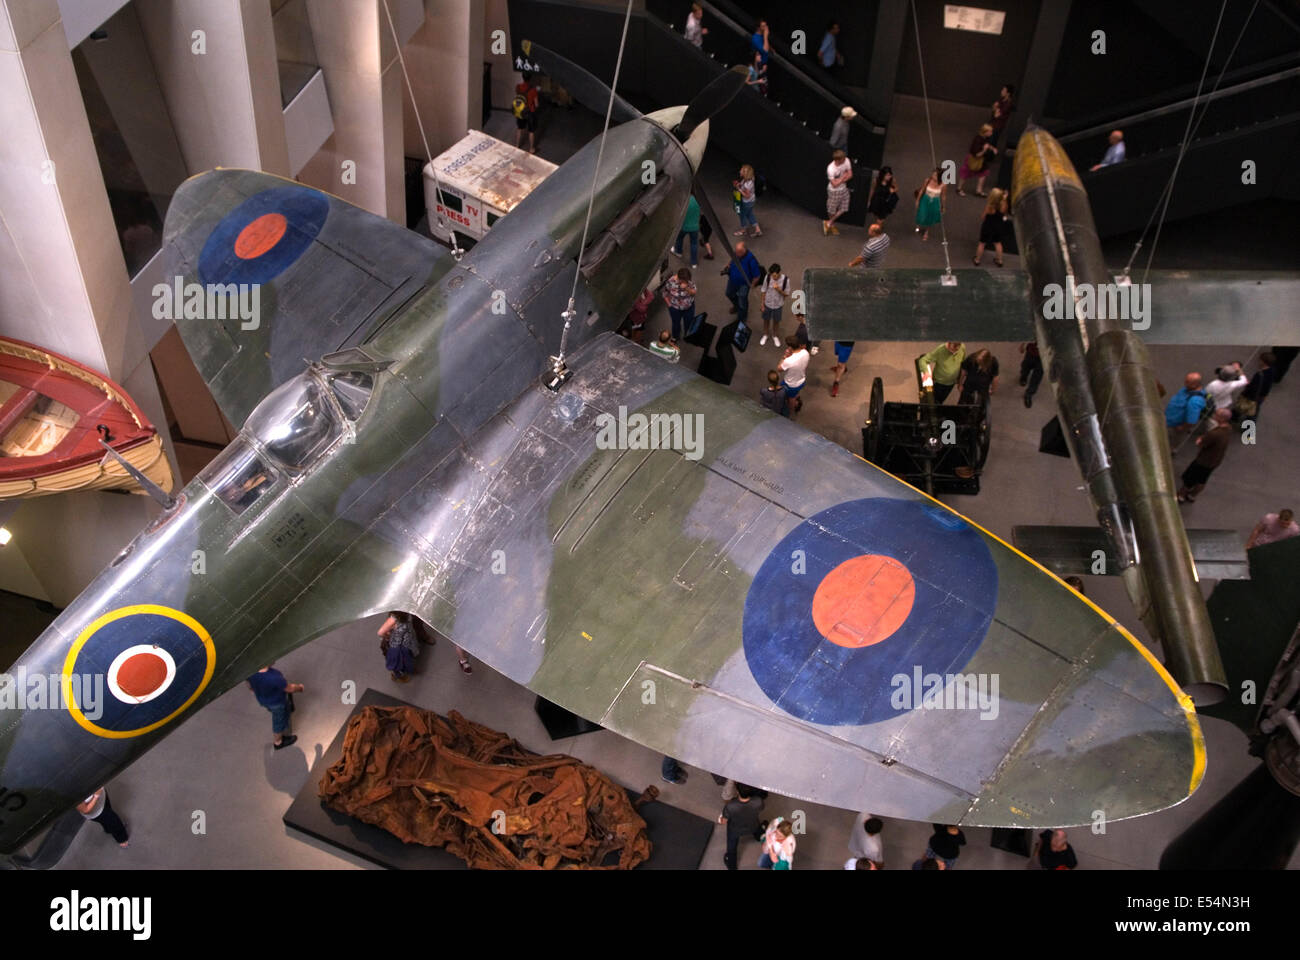 Imperial War Museum London UK  New display new atrium 2014.  HOMER SYKES Stock Photo